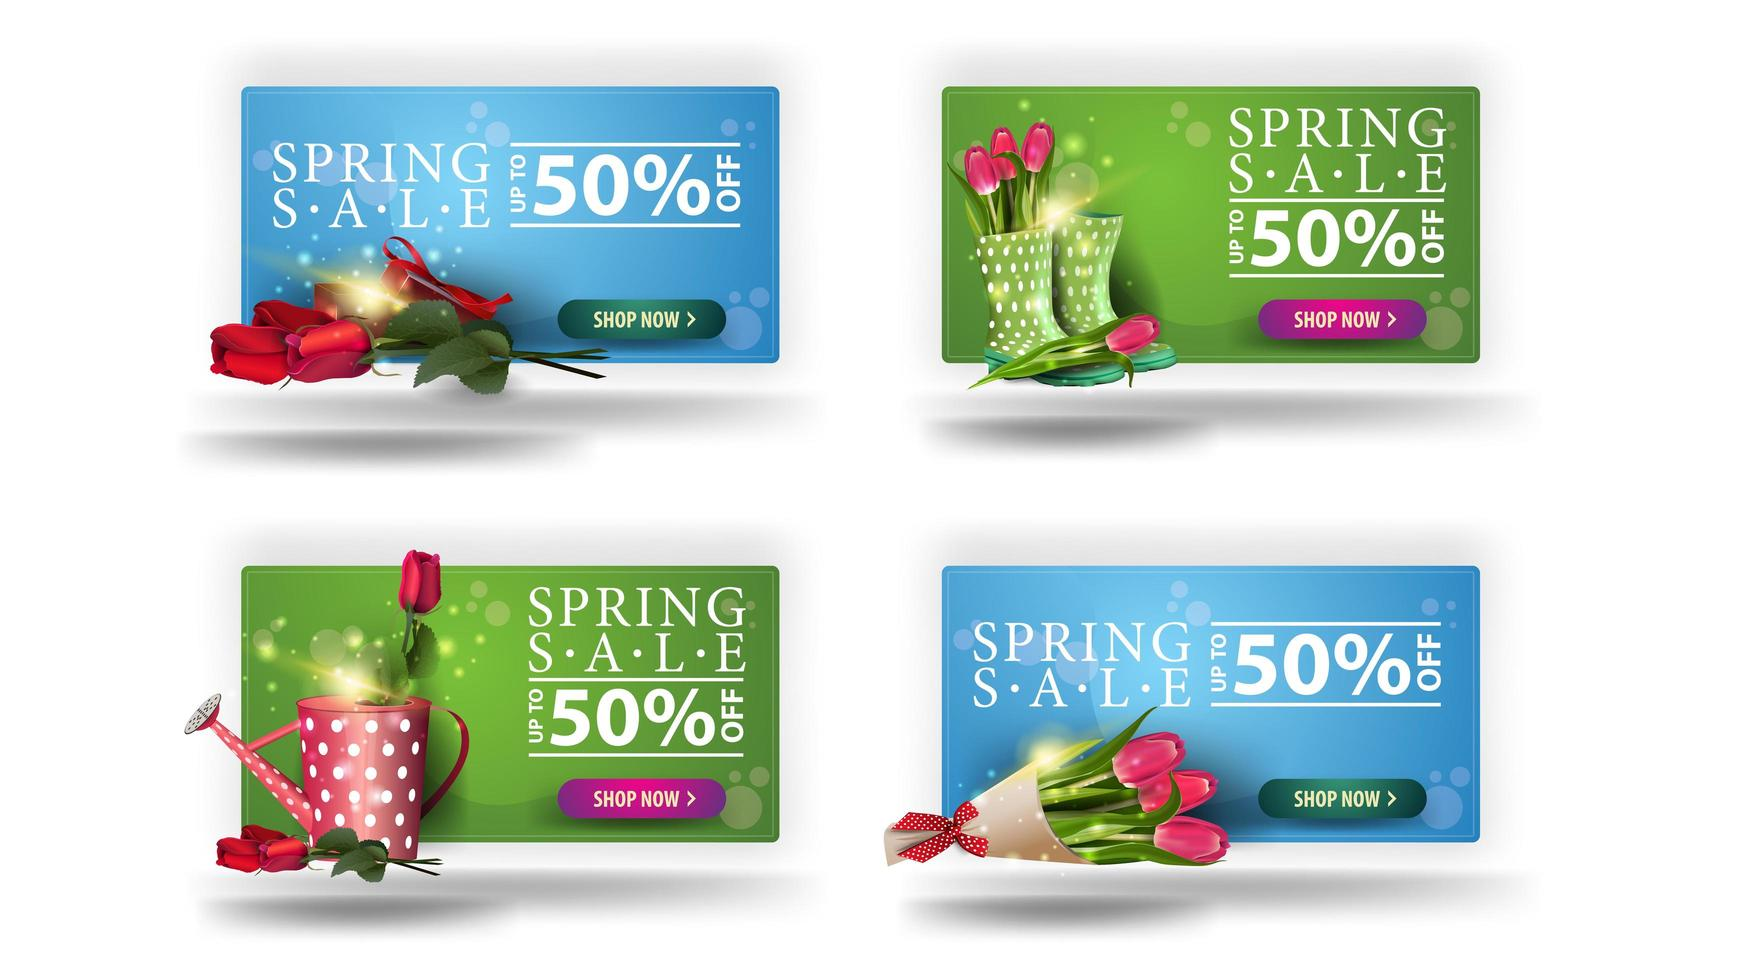 Spring sale banners with rounded edges and buttons vector